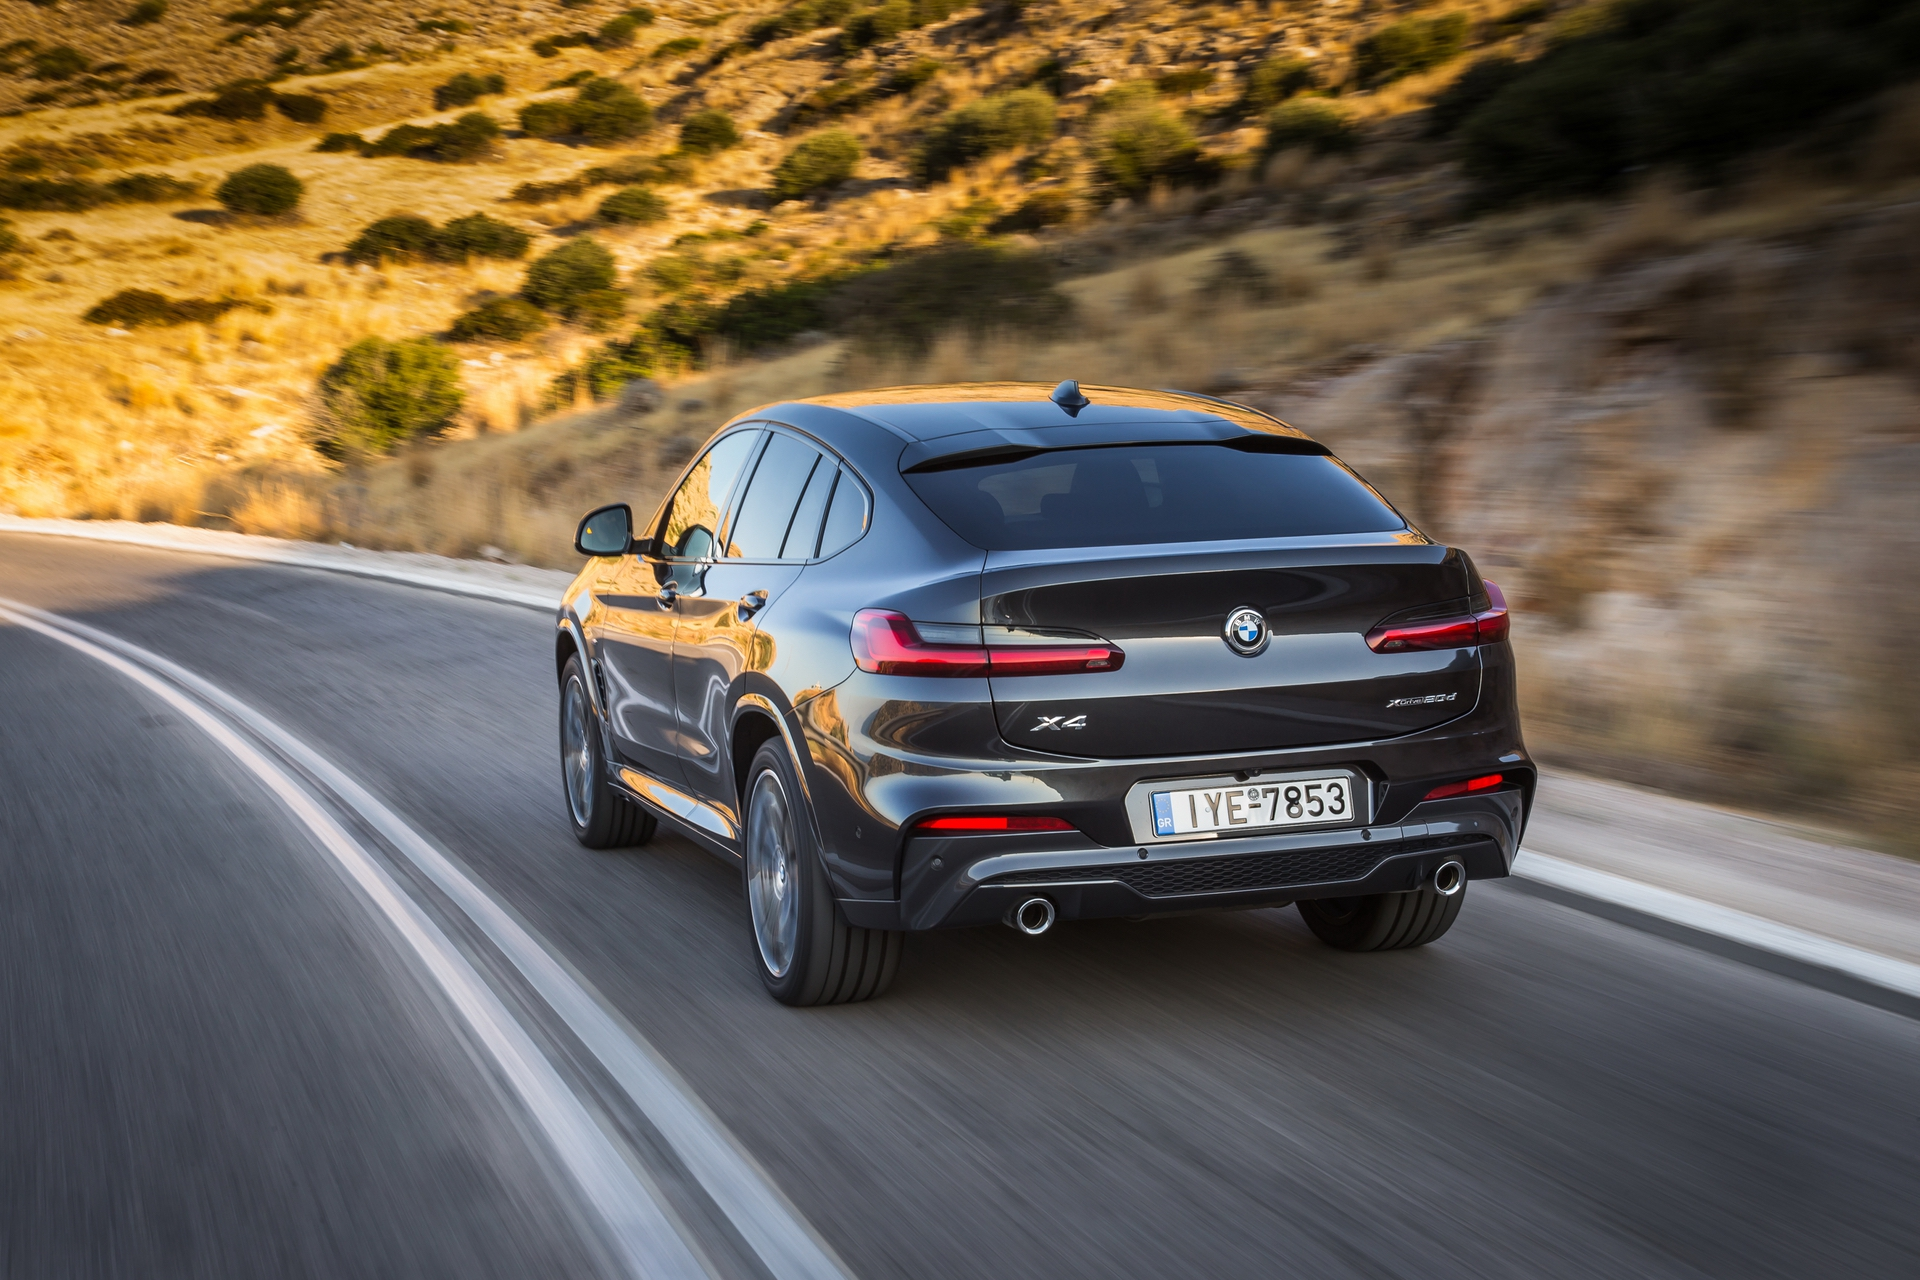 BMW_X4_greek_presskit_0100